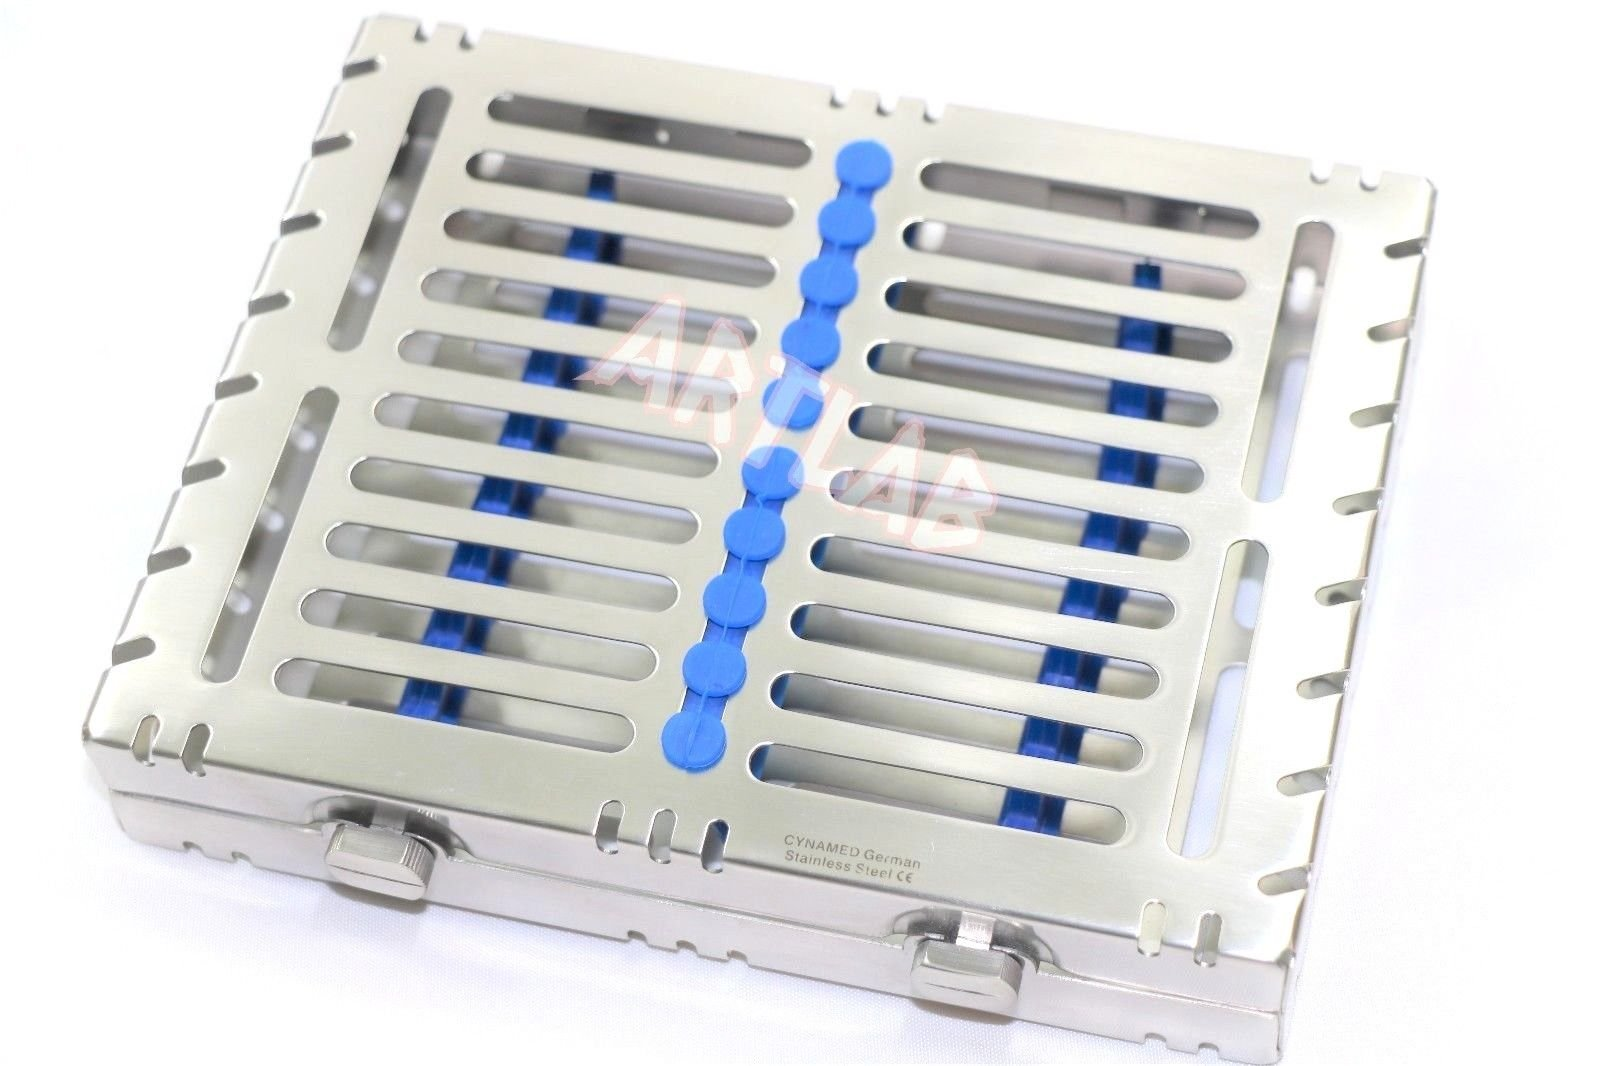 1 GERMAN DETACHABLE DENTAL AUTOCLAVE STERILIZATION CASSETTES RACKS BOX FOR 10 INSTRUMENTS BLUE ( CYNAMED ) by CYNAMED